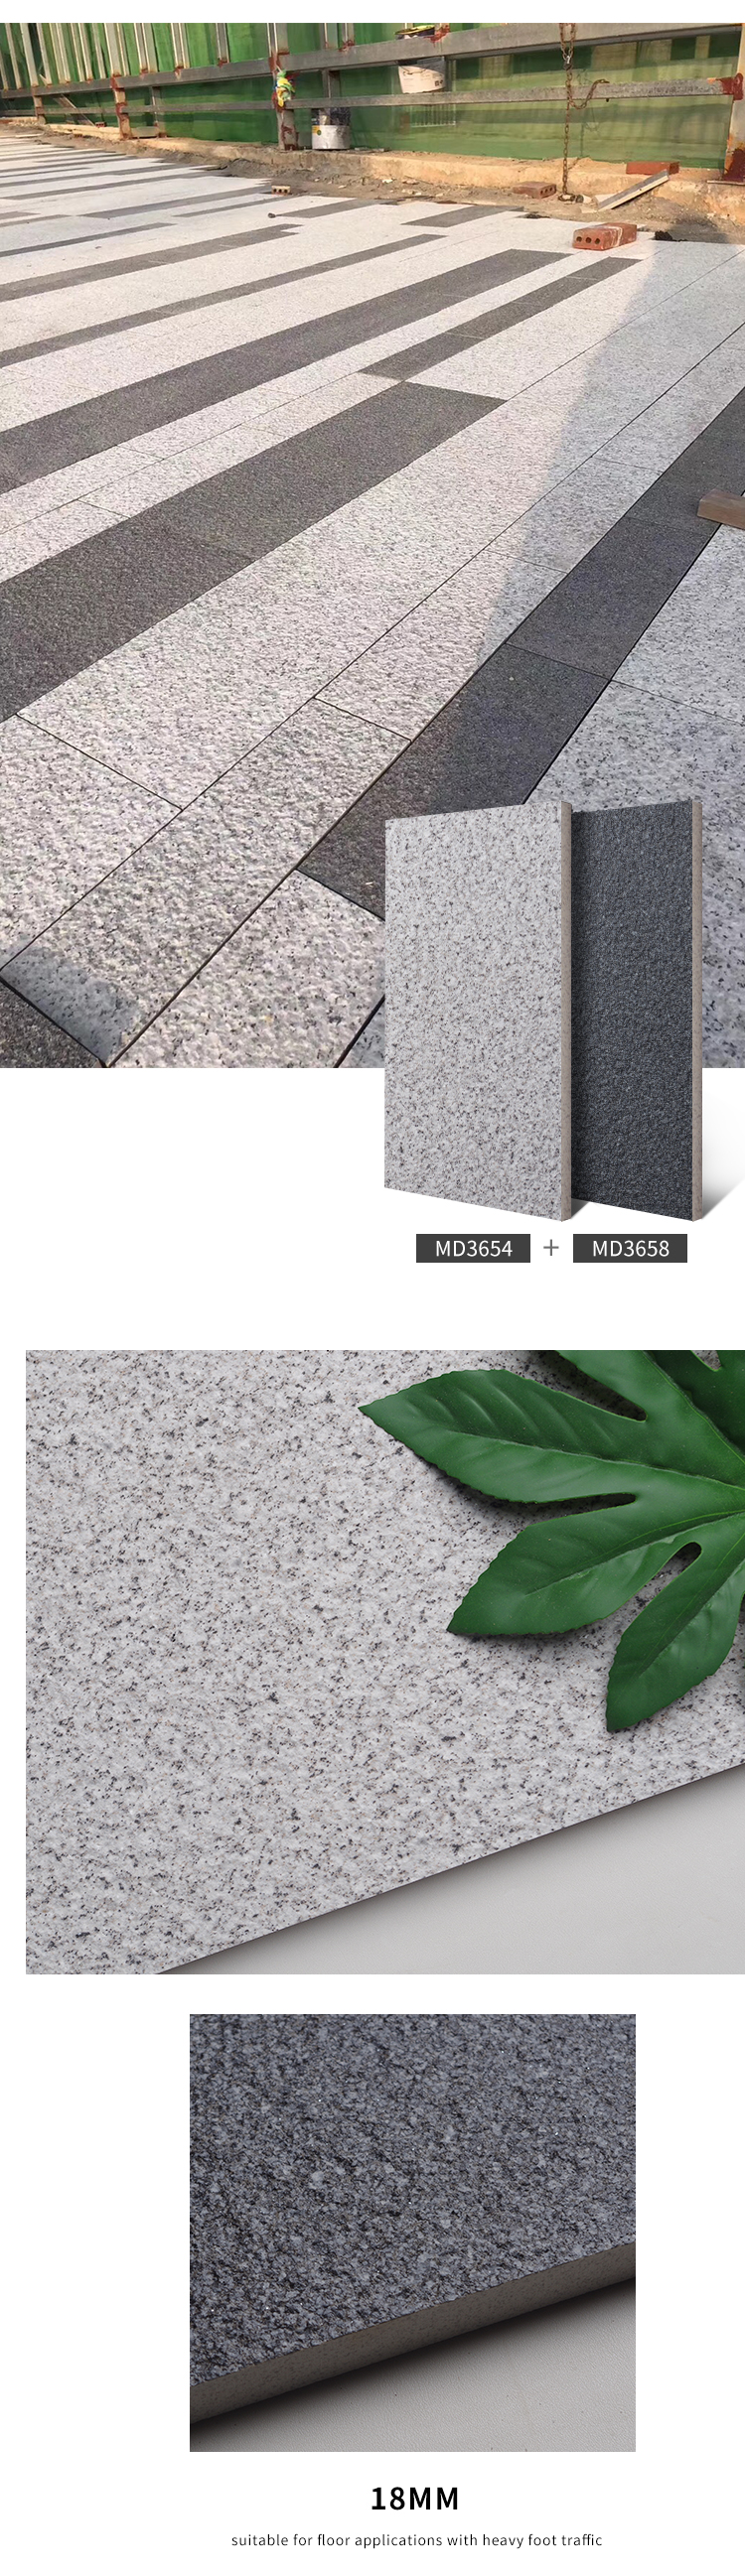 Nine Colors 300 600 Office Building Commercial Granite Stone Design Heavy Duty Car Parking Ceramic Floor Tile Outdoor Beige Grey Buy Pavement Tiles Outdoor Exterior Floor Tiles Porcelain Outdoor Tile Product On Alibaba Com